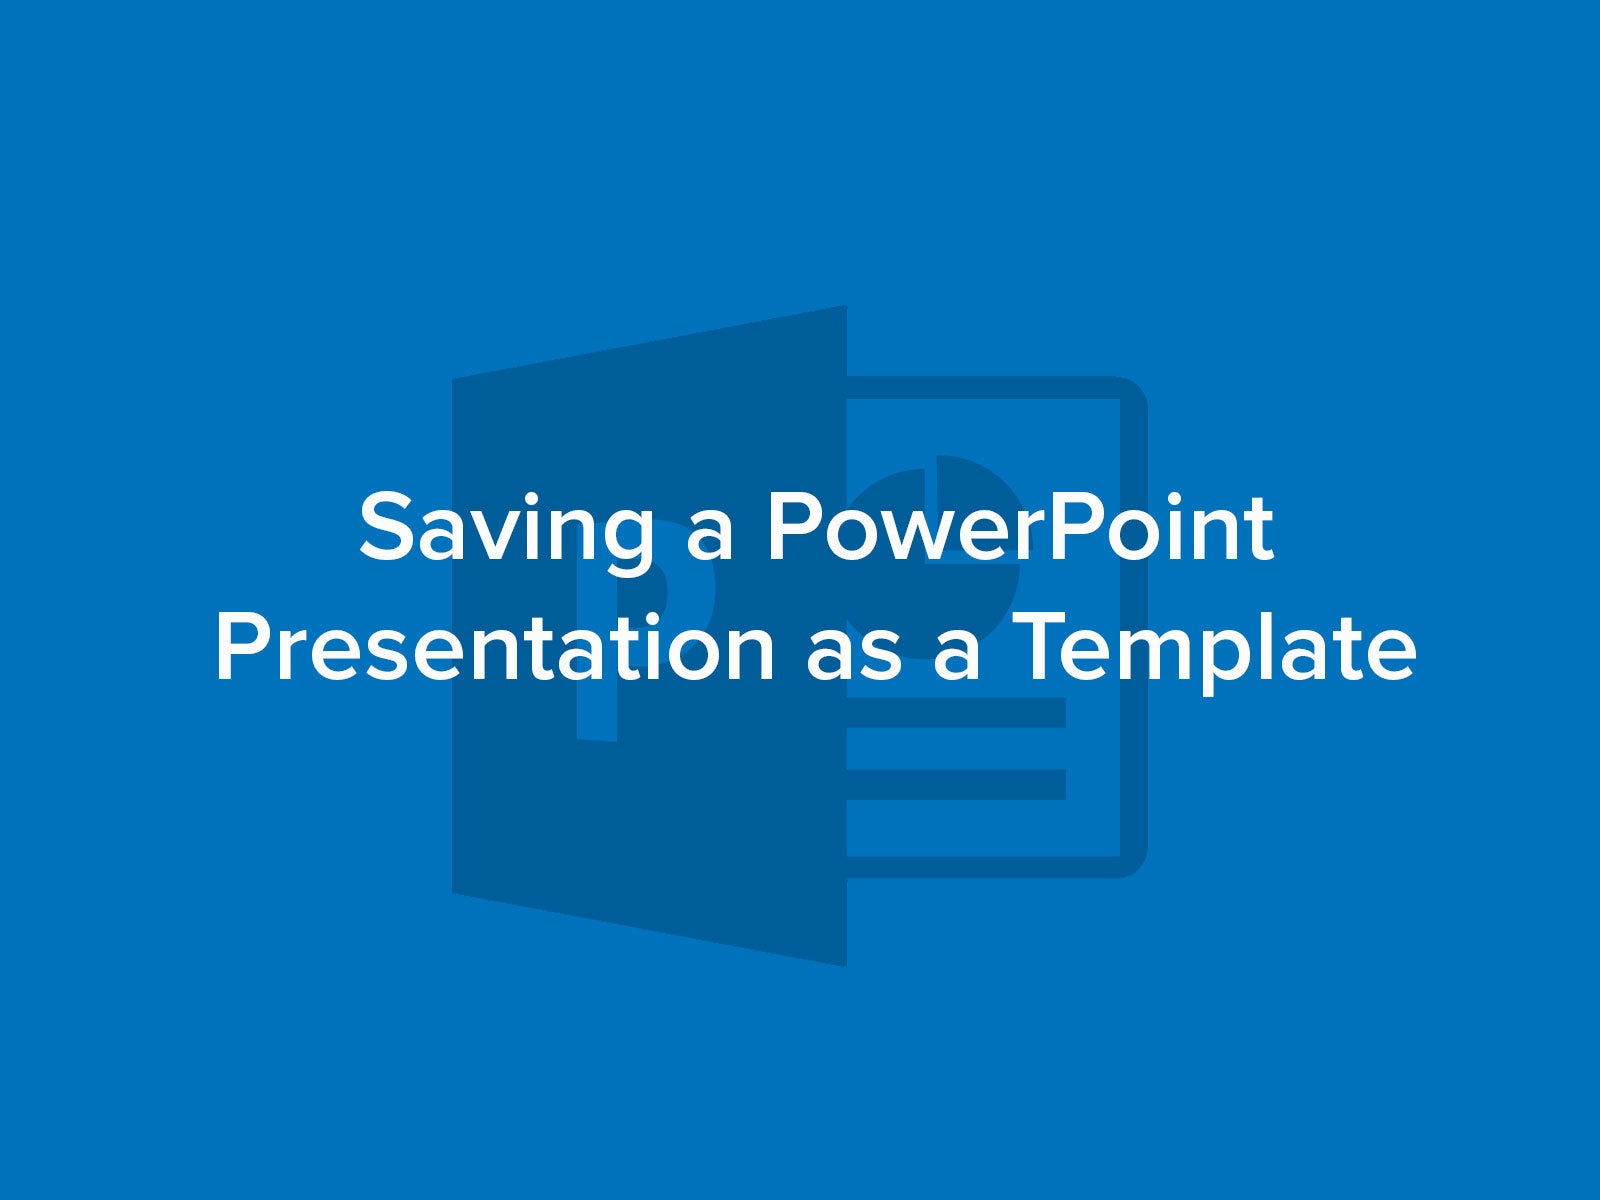 How to Save a PPT Presentation as a Template